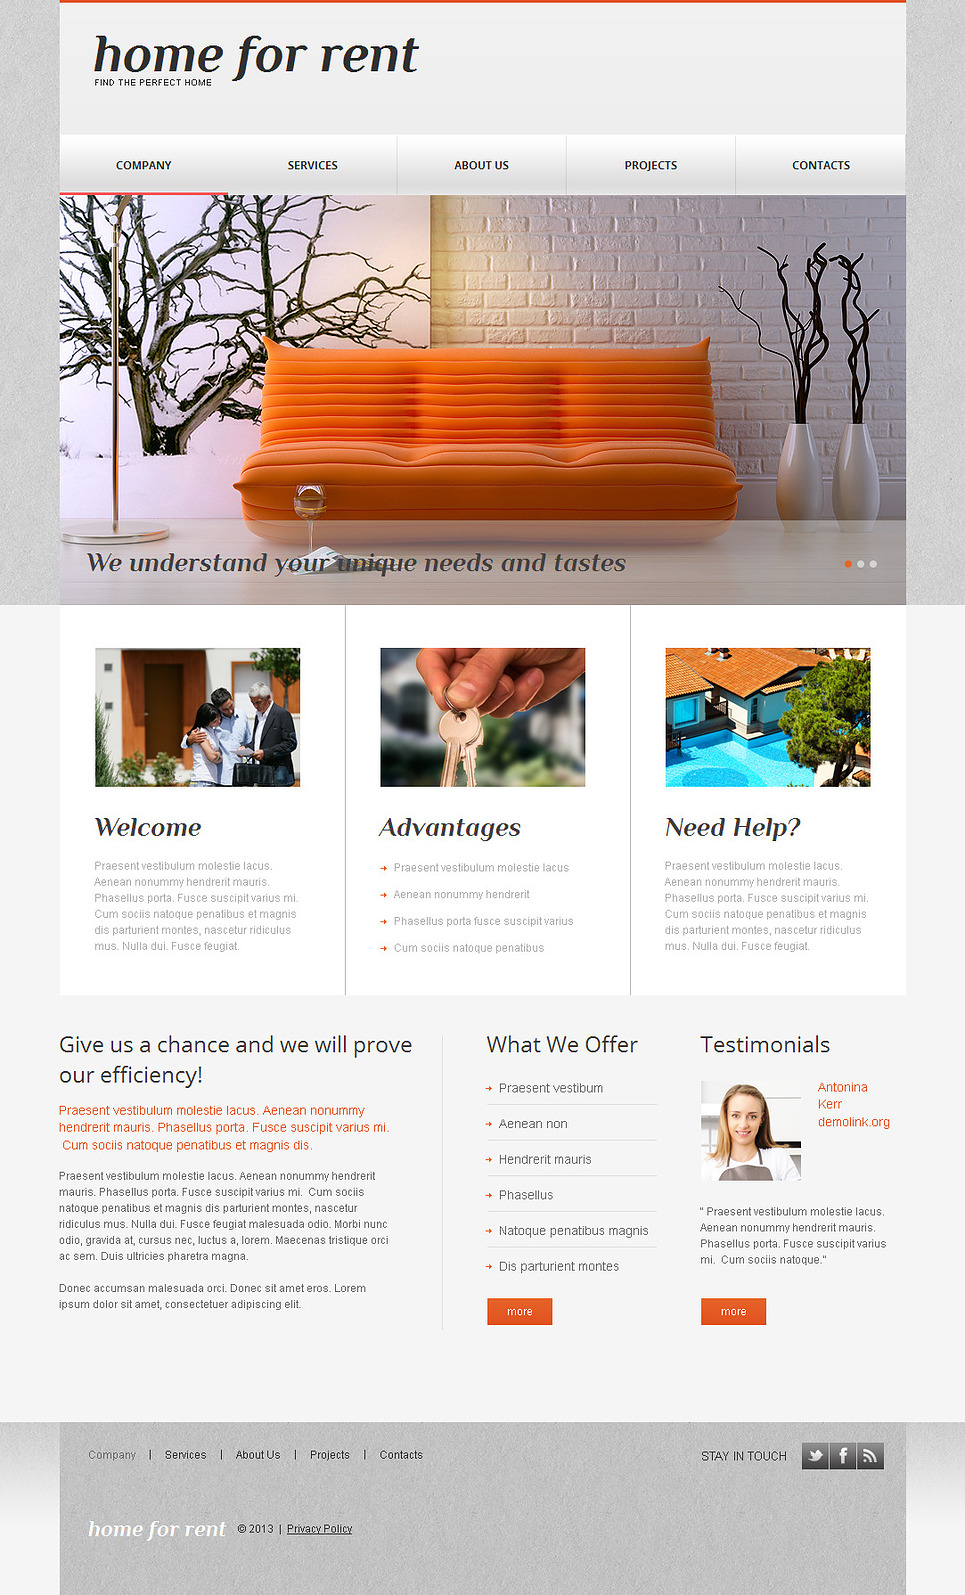 Real Estate Website Template - Find Home for Rent with Ease - image